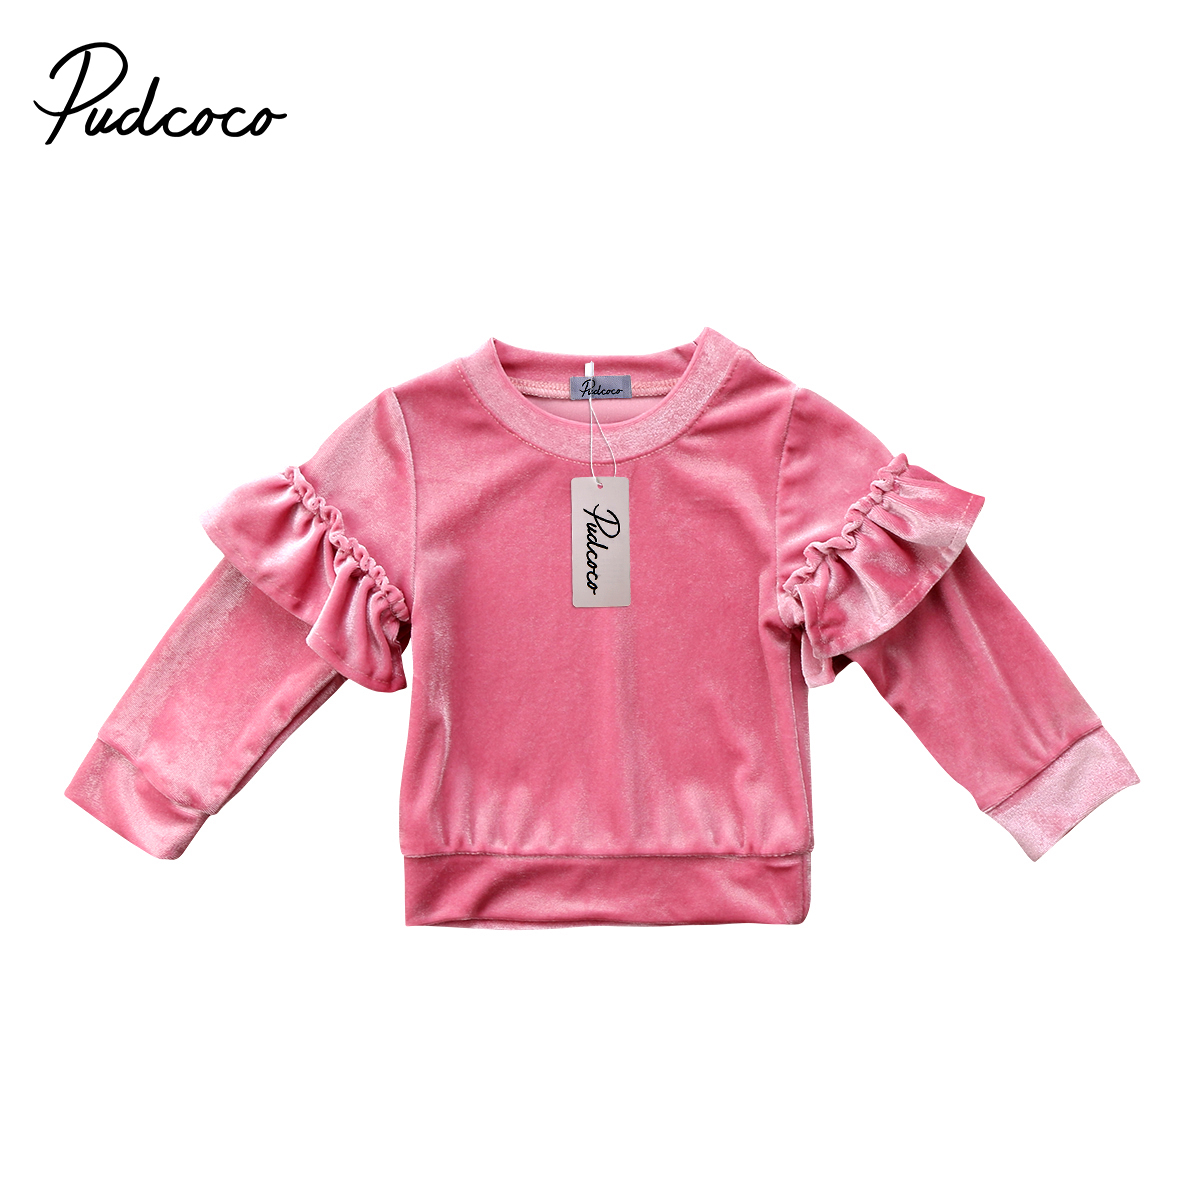 New Arrive Sweet Children Kids Baby Girls Velvet Fleece Long Sleeve O-neck Tops T shirt Ruffles Sweatshirt Jumper